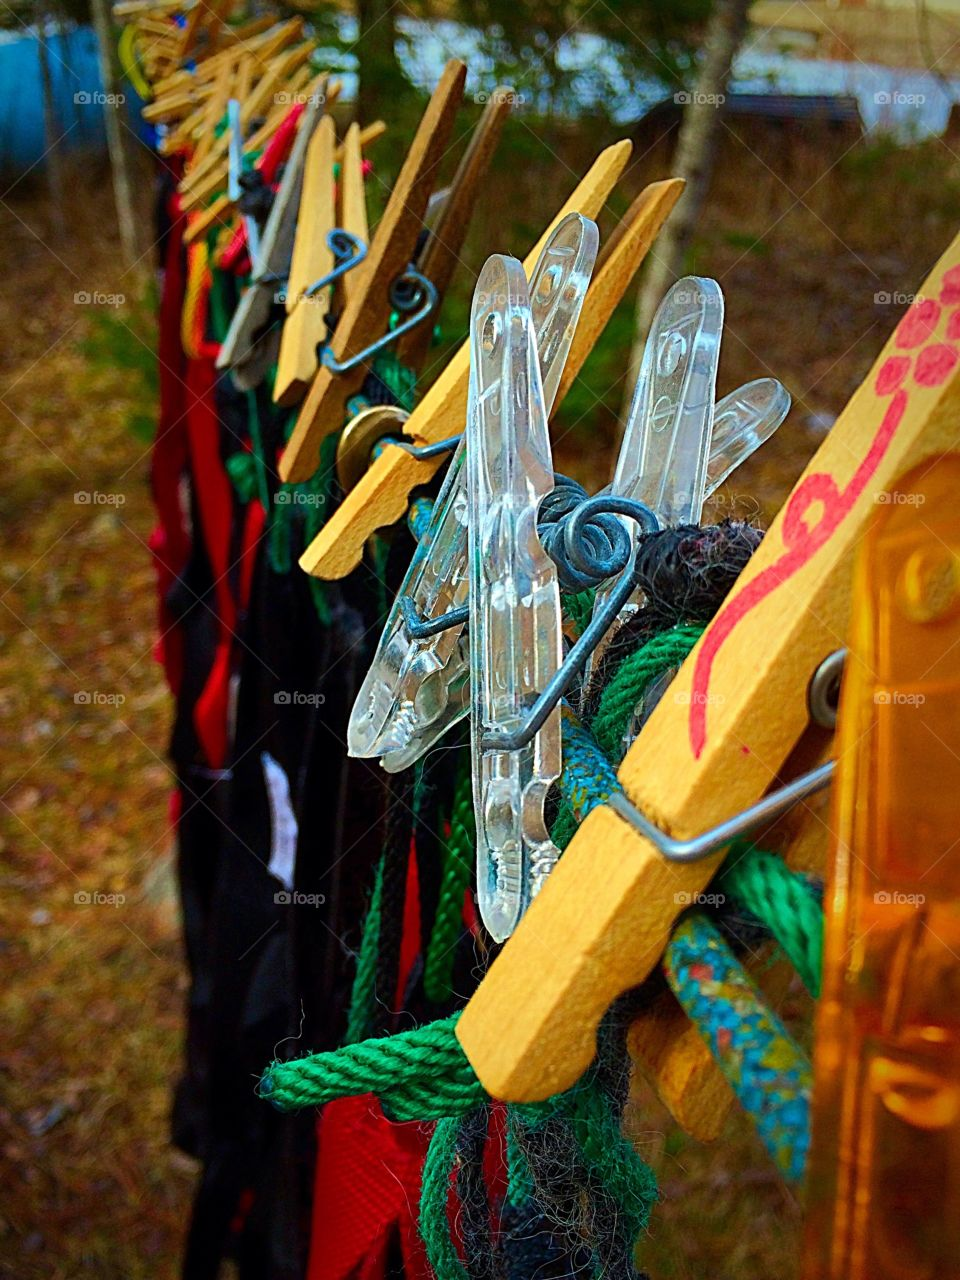 Hanging dog harnesses after a long season of dog sledding. They needed the washing.